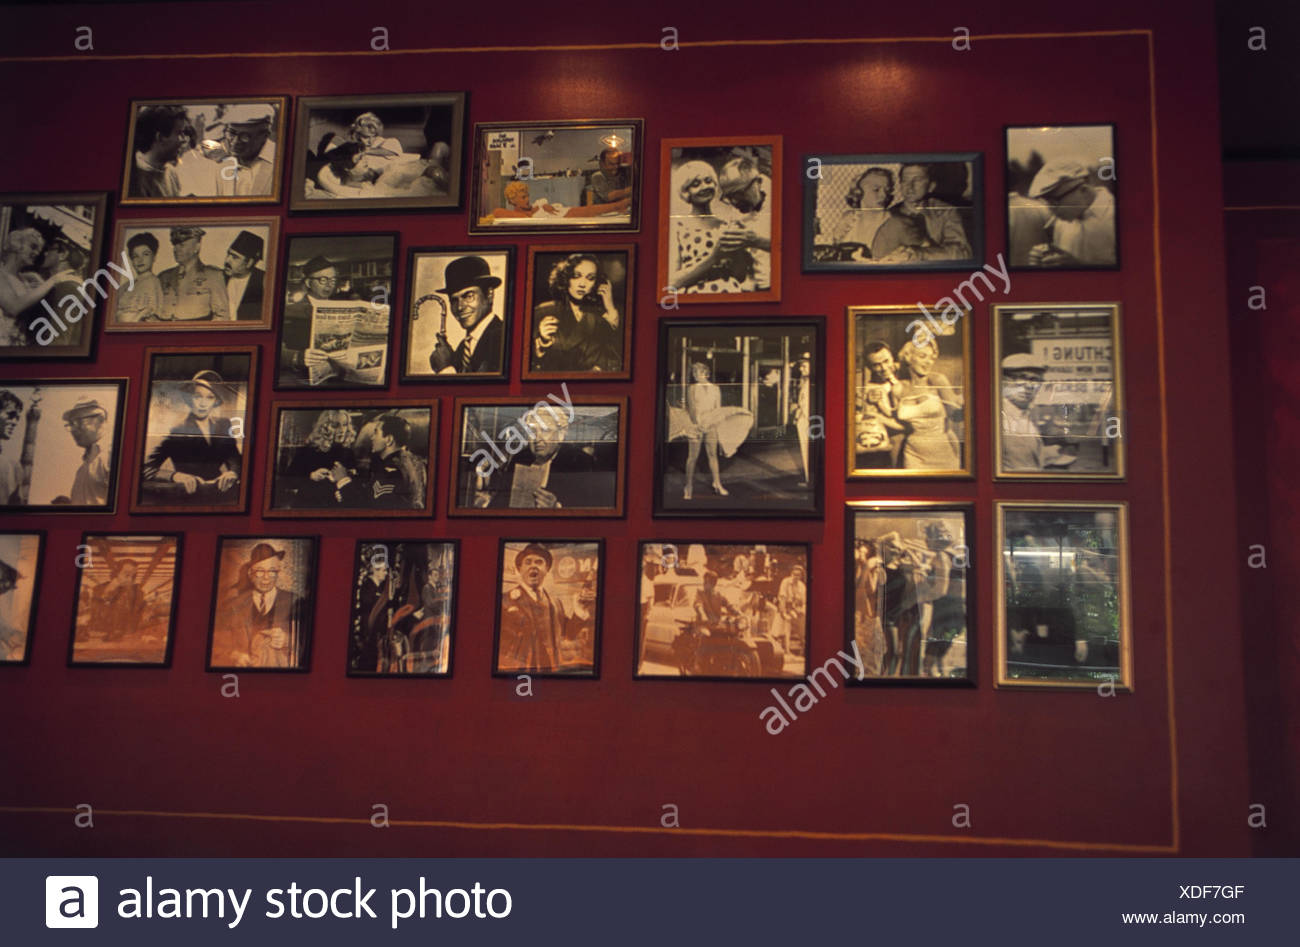 Germany, Berlin, Billy wilder it restaurant, wall, photo, public figures, Europe, capital, Potsdam space, bar, bar, film star, glaucoma, Hollywood glaucoma, portrait, product photography, gastronomy - Stock Image